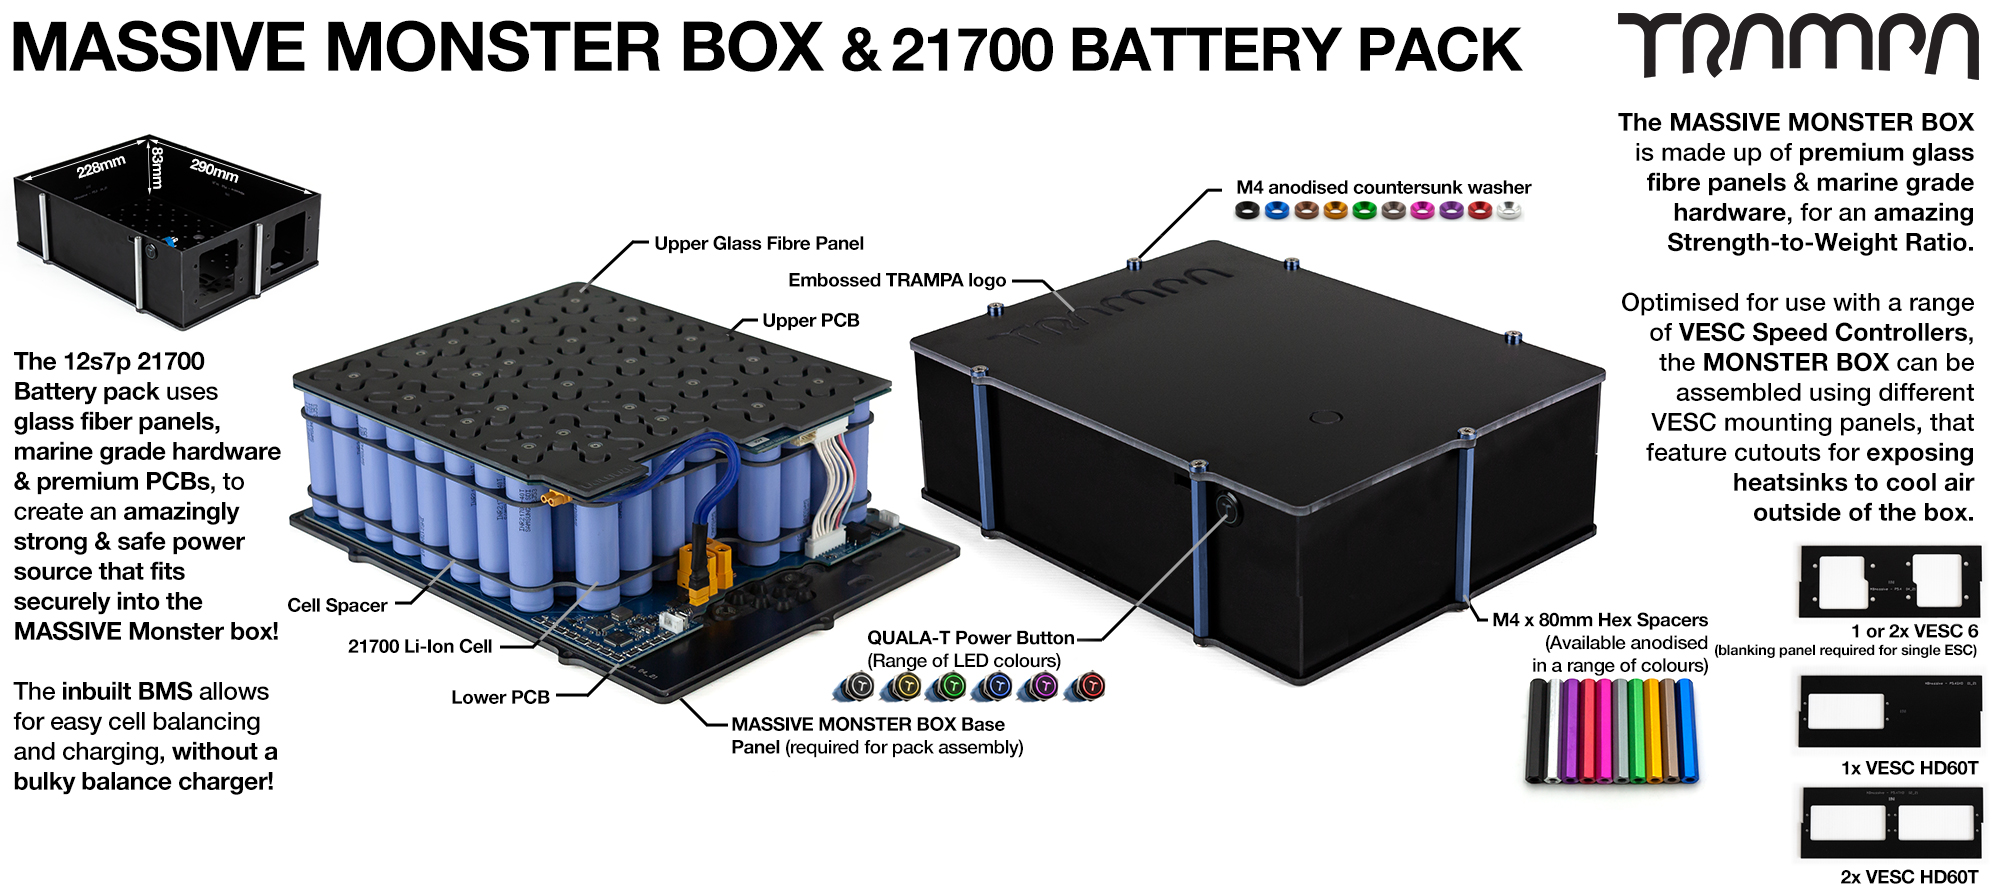 21700 MASSIVE MONSTER Box with 21700 PCB Pack with 84x 21700 cells 12s7p 35Ah NO VESC - UK Customers only